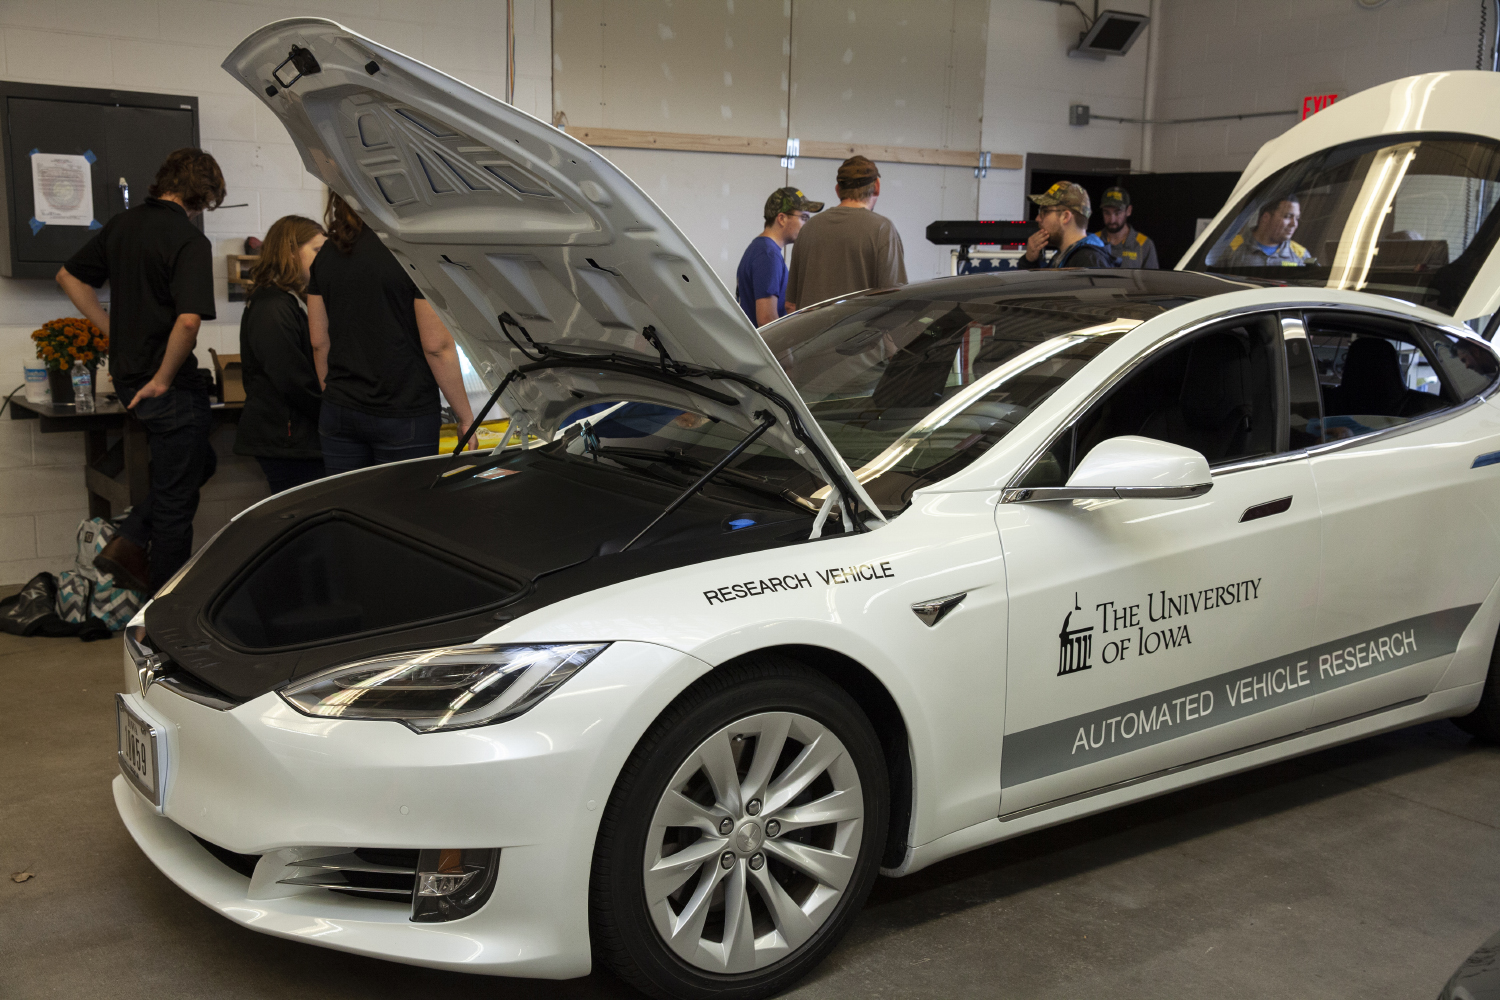 A Tesla automated driving research vehicle sits in a garage on display during an open house at the National Advanced Driving Simulator in Coralville on Wednesday Oct. 10, 2018. (Nick Rohlman/The Daily Iowan)